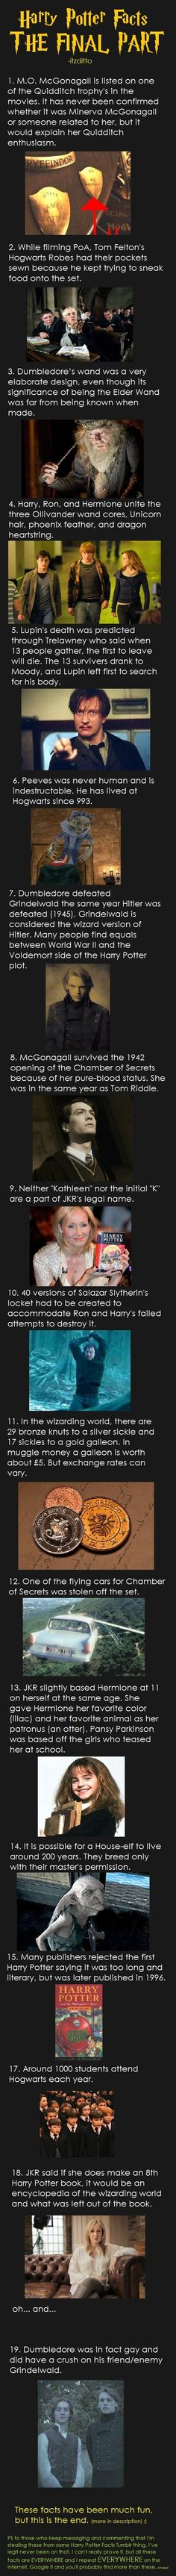 HP Facts. The last fact is, welll….. Let's say, VERY interesting! :S